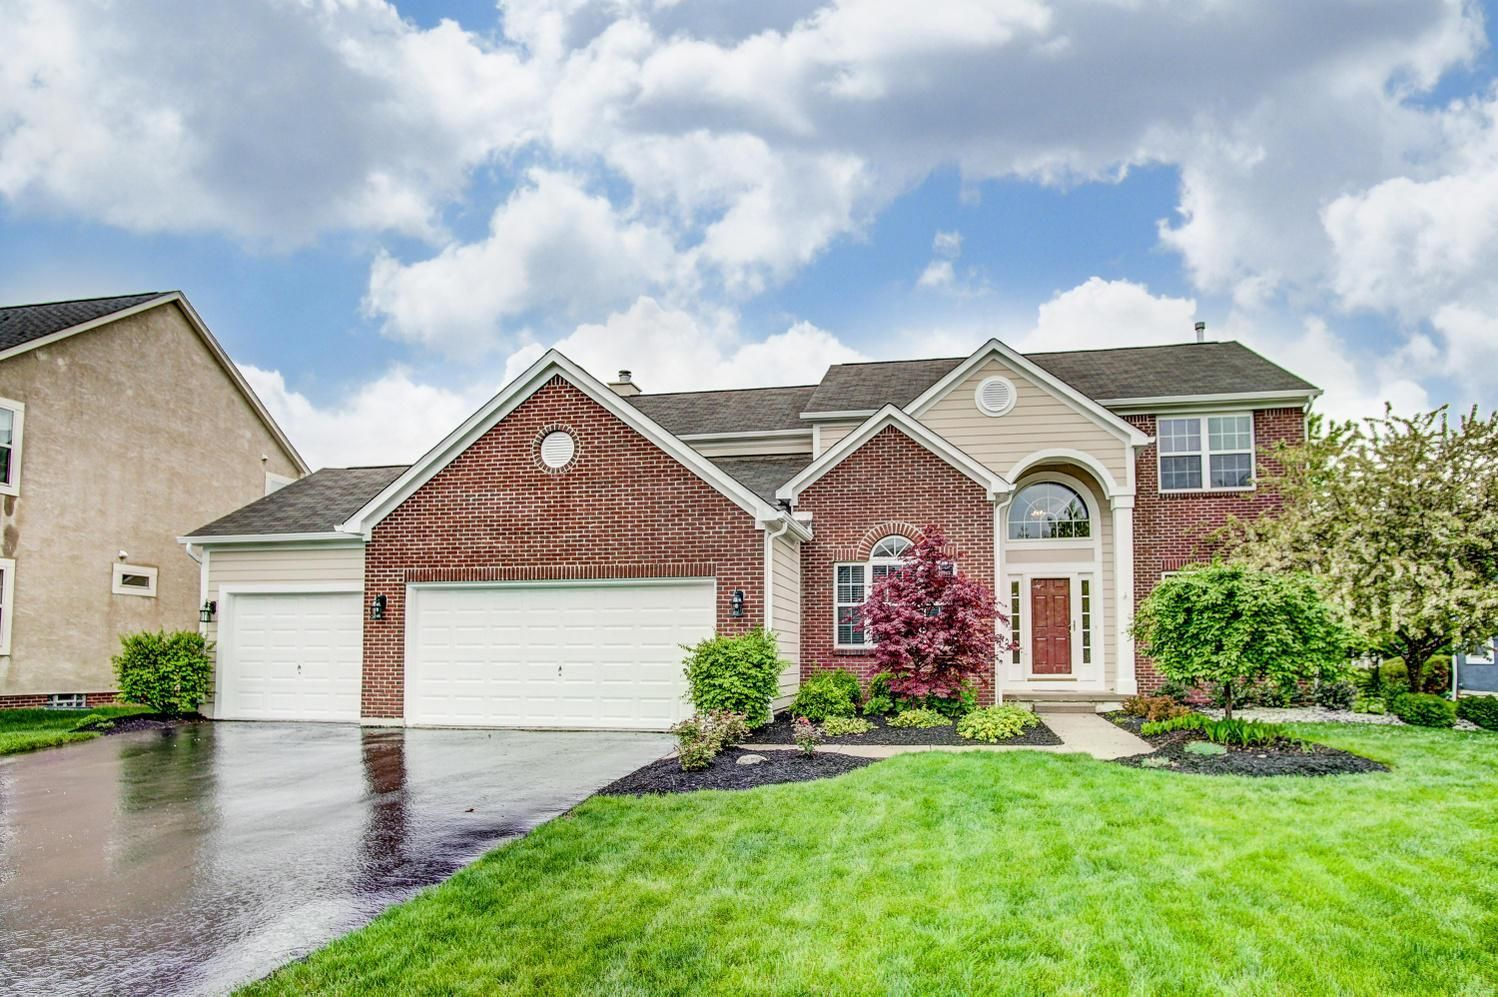 5515 Pensworthy Drive Dublin Oh Mls 219014920 Michelle Morris Group 614 467 8048 Central Ohio Home Residential Land Sell My House Multi Family Homes